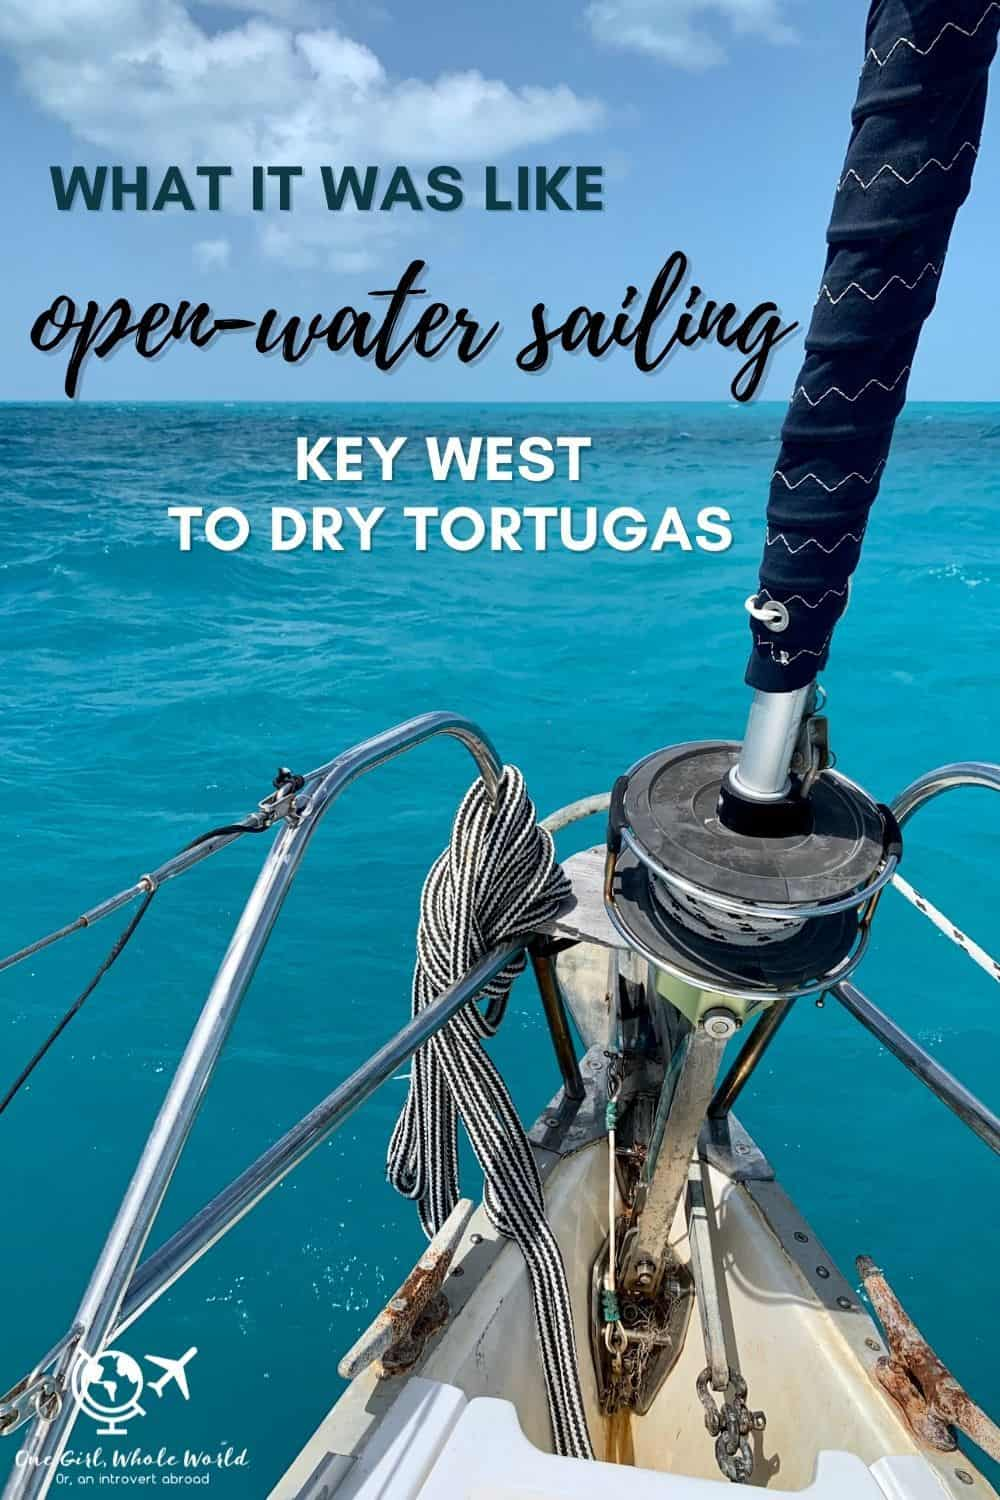 What it Was Like Open-Water Sailing Key West to Dry Tortugas | Ever wondered what a multi-day sailing trip on the open water is like? I did a 5-day trip from Key West to Dry Tortugas National Park and back...absolutely loved it, but not without its challenges. Here is my experience & some amazing pics! #sailing #boating #openwater #drytortugas #keywest